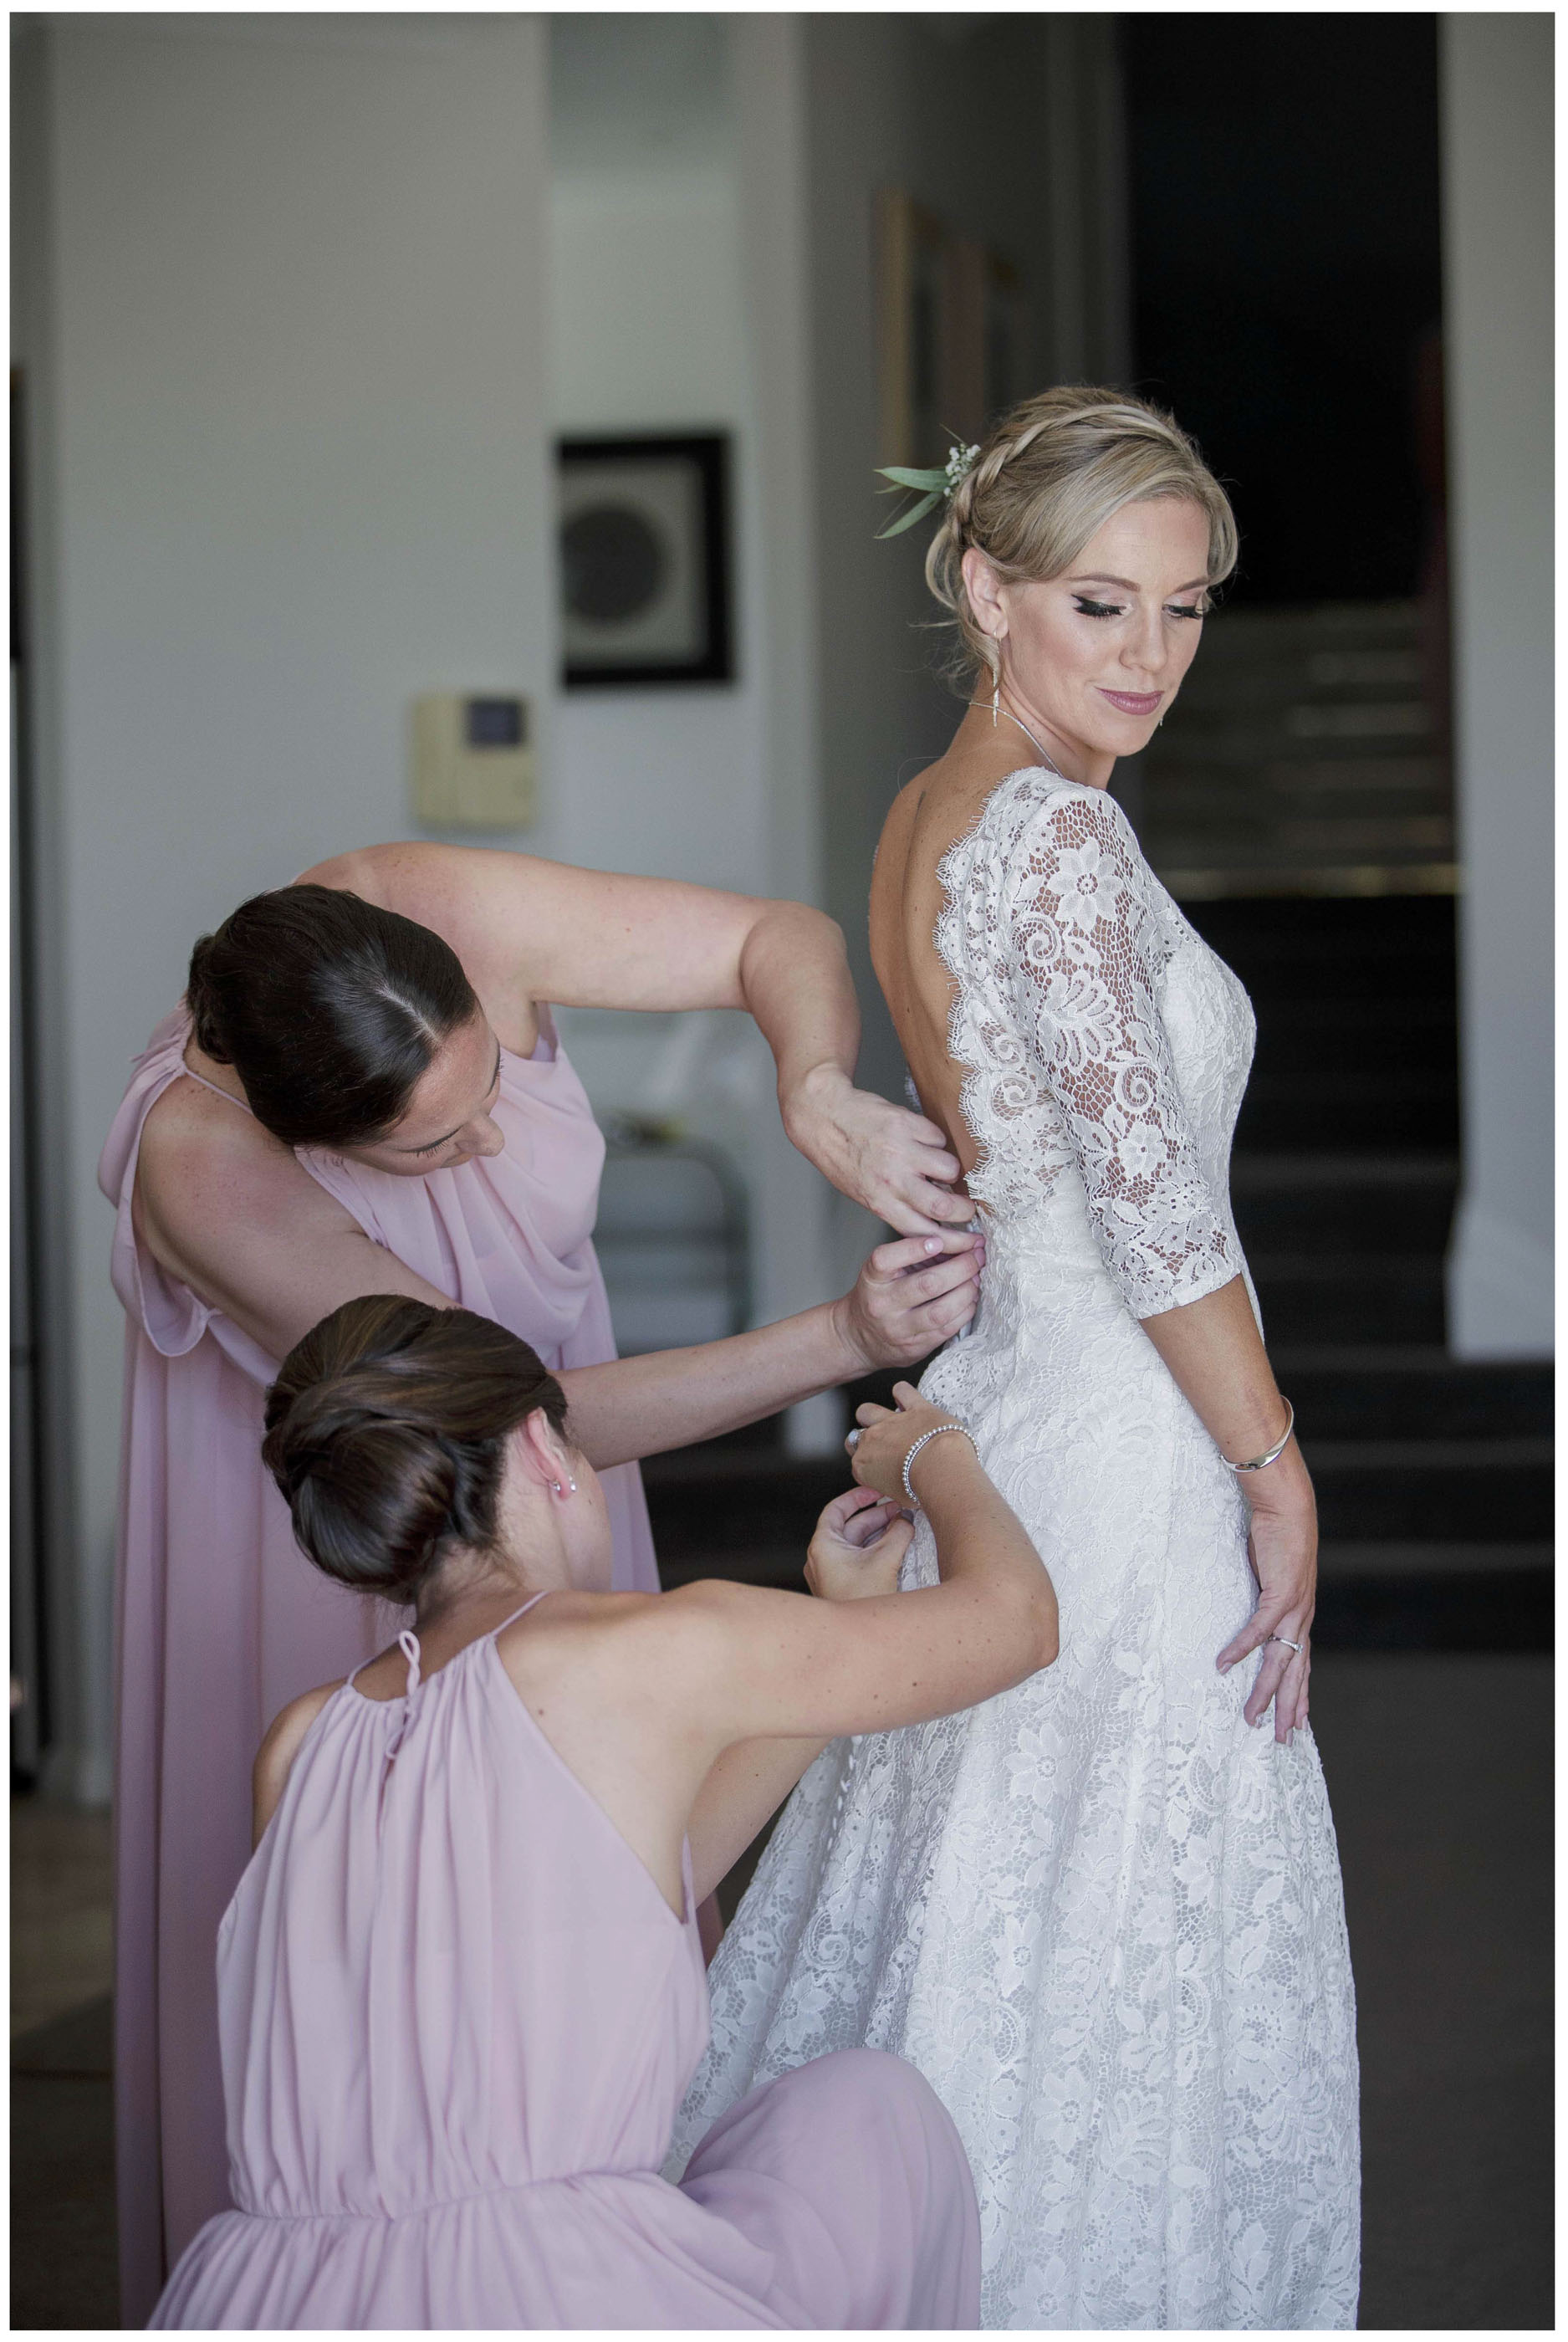 Bridesmaids in lilac dresses botton the bride's white lace wedding dresss